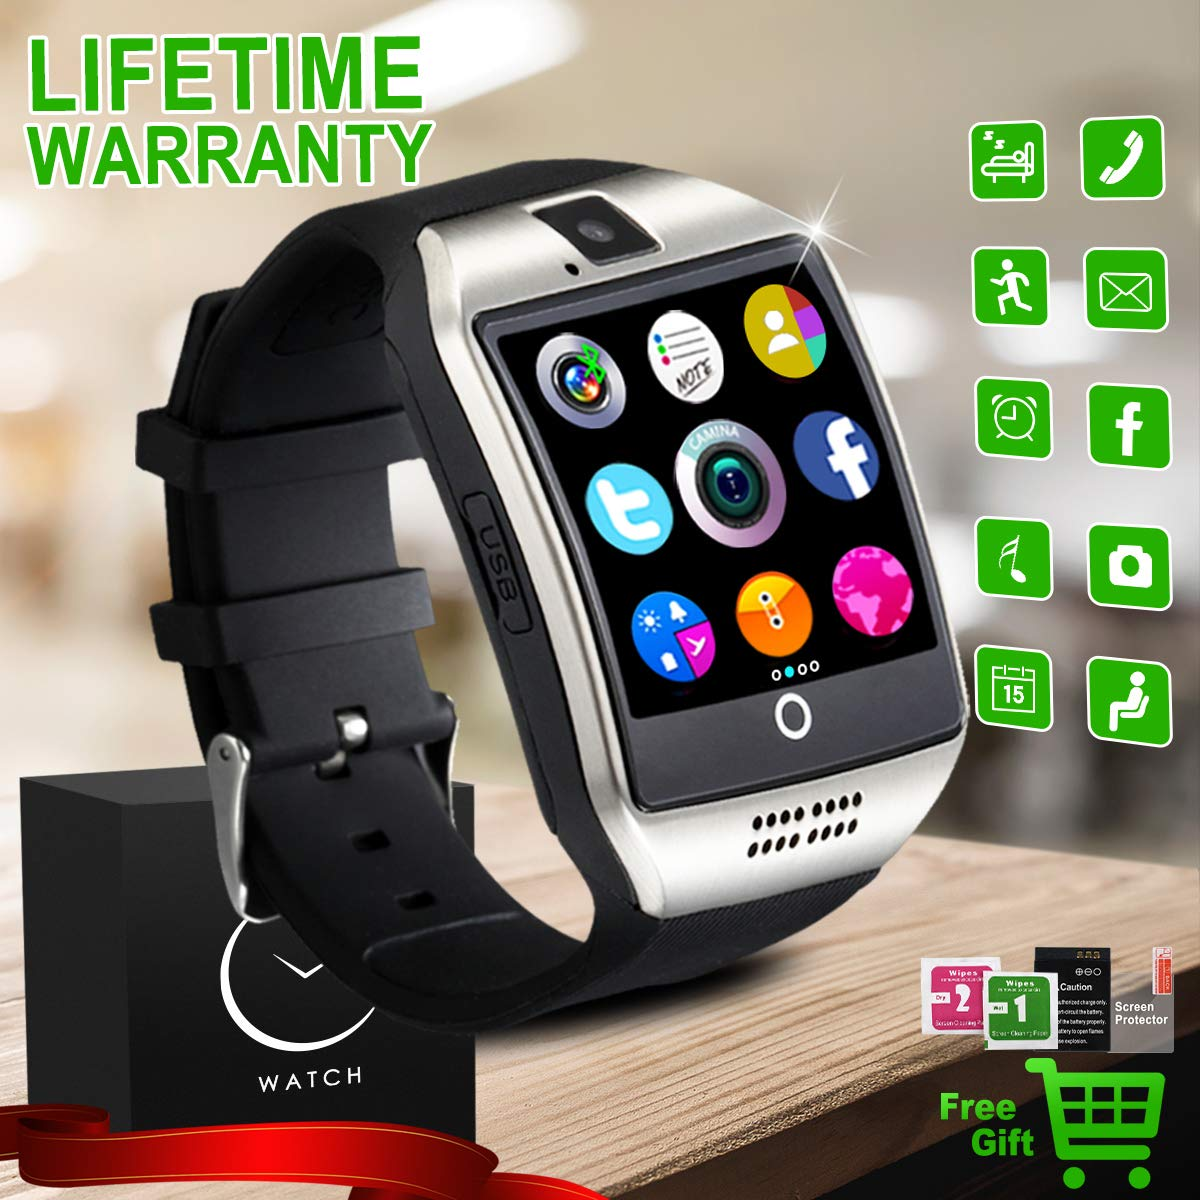 Smartwatch, Bluetooth Smart Watch Android ios Orologio Intelligente con Camera SIM TF Card Slot Facebook WhatsAPP Sport Watch Pedometro Wrist Watch Telefono Watch per Uomo Donna Bambini product image